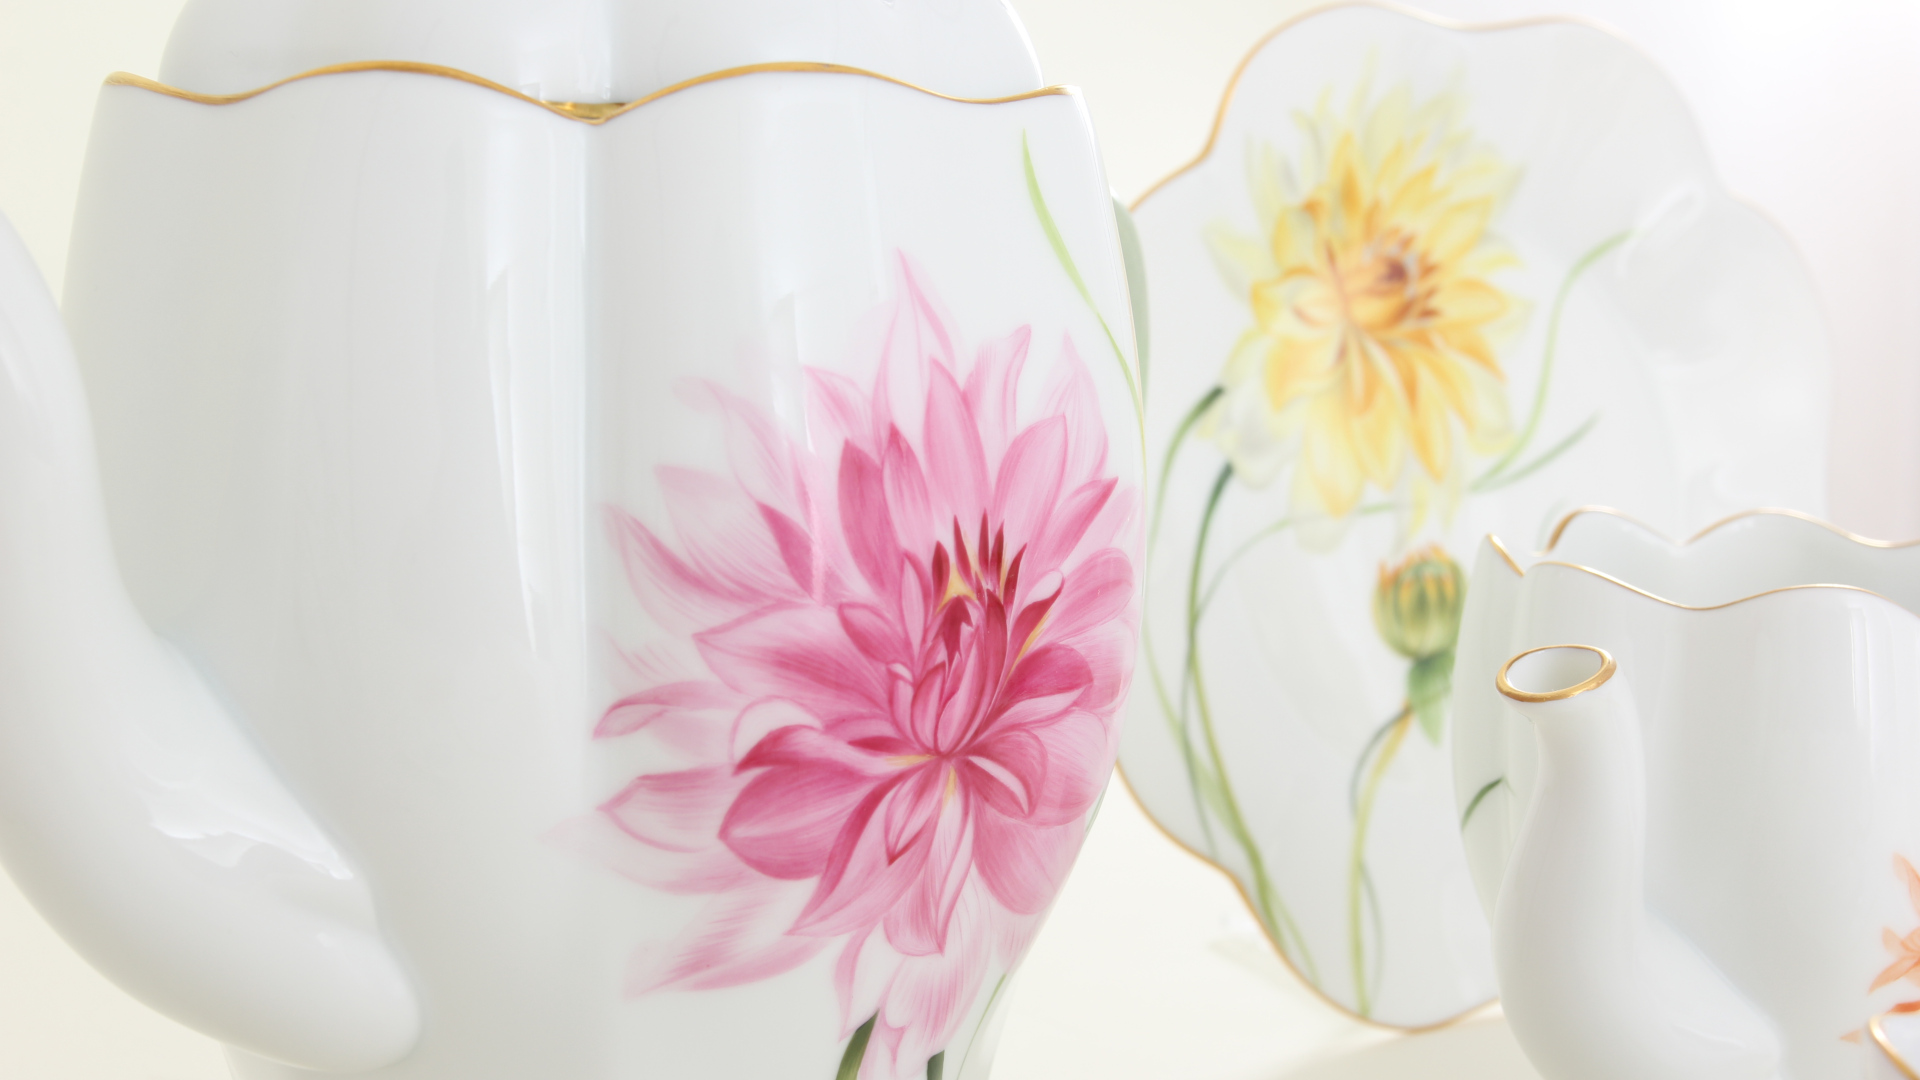 Herend porcelains